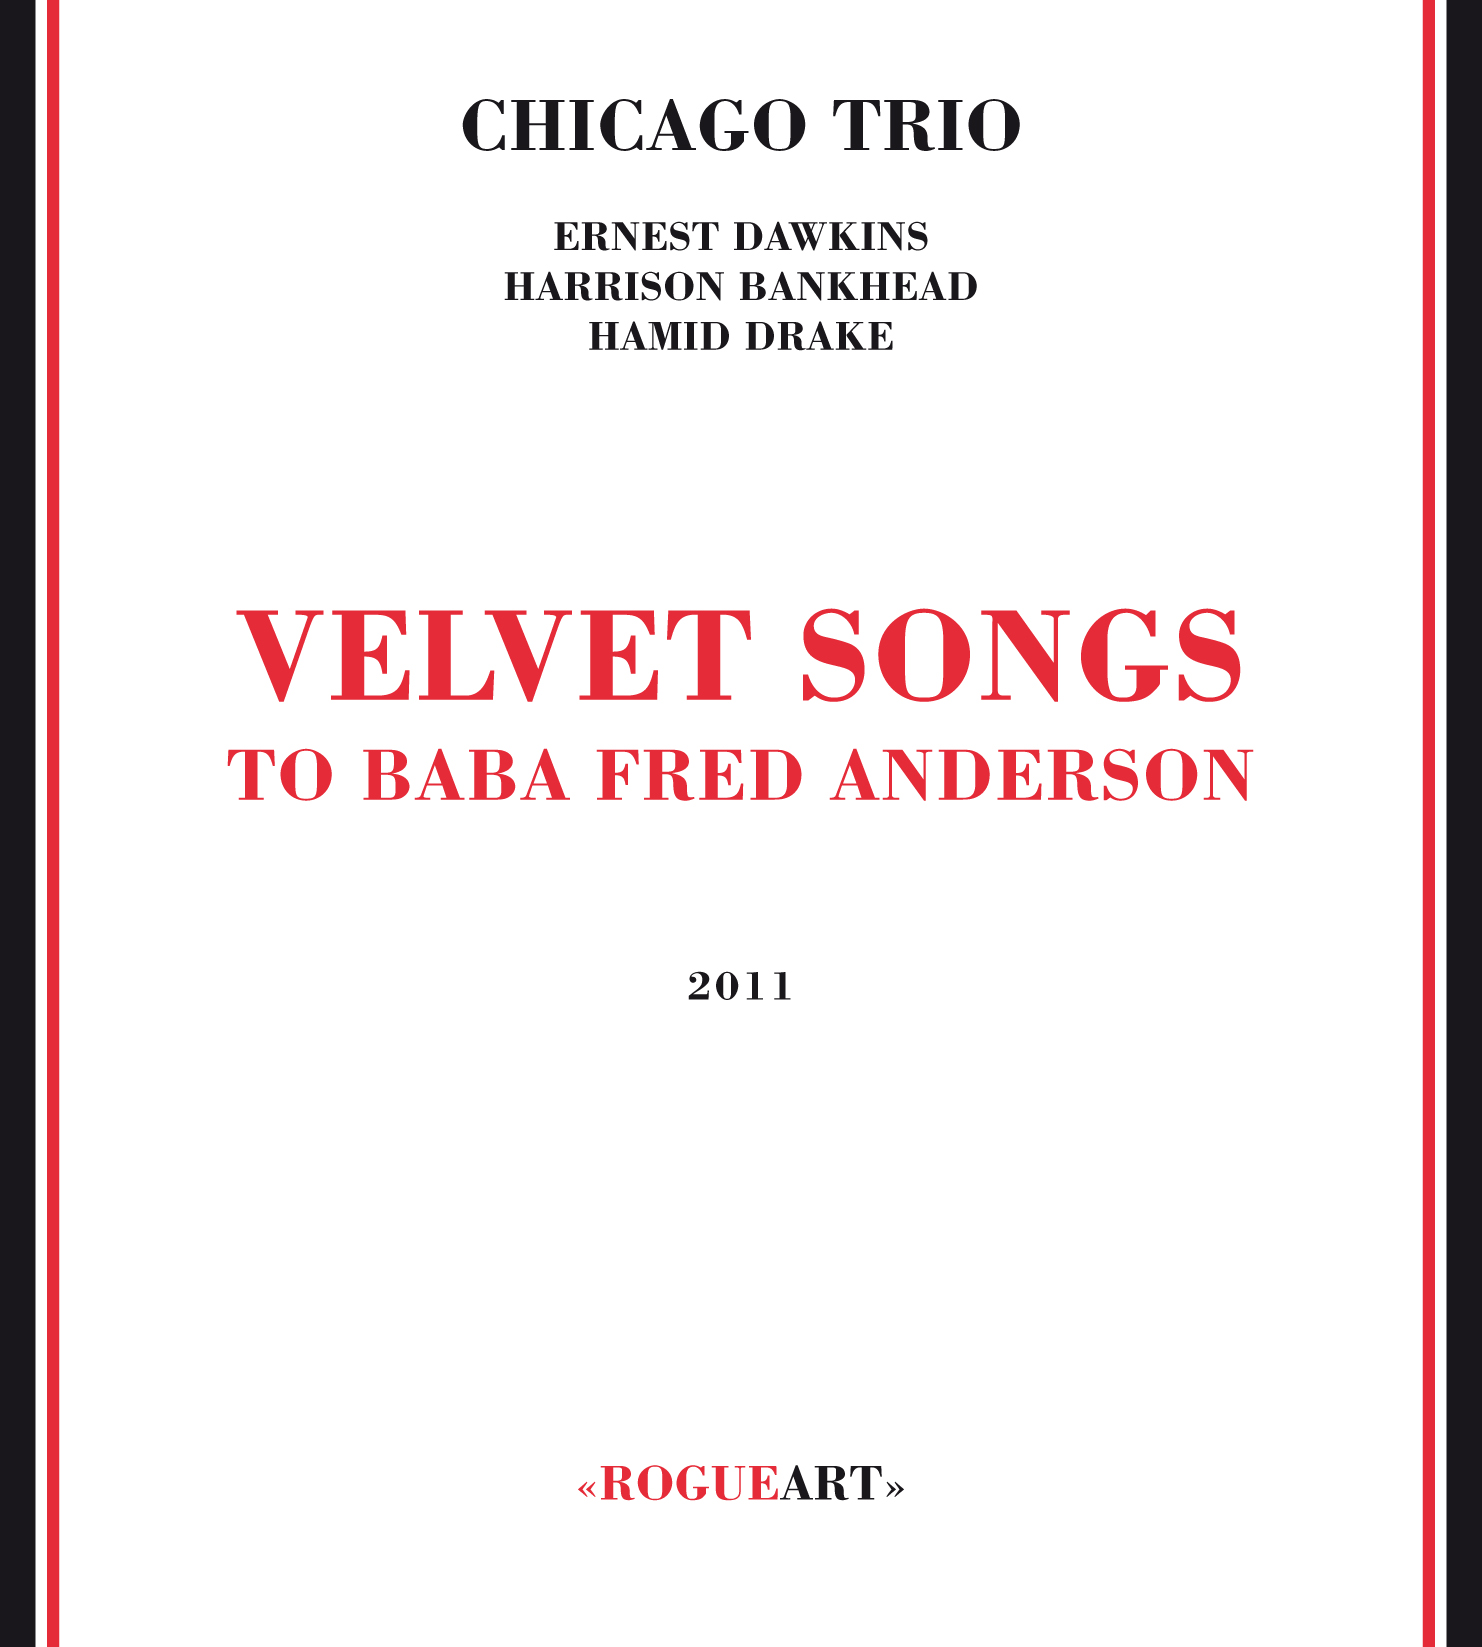 Front cover of the album VELVET SONGS